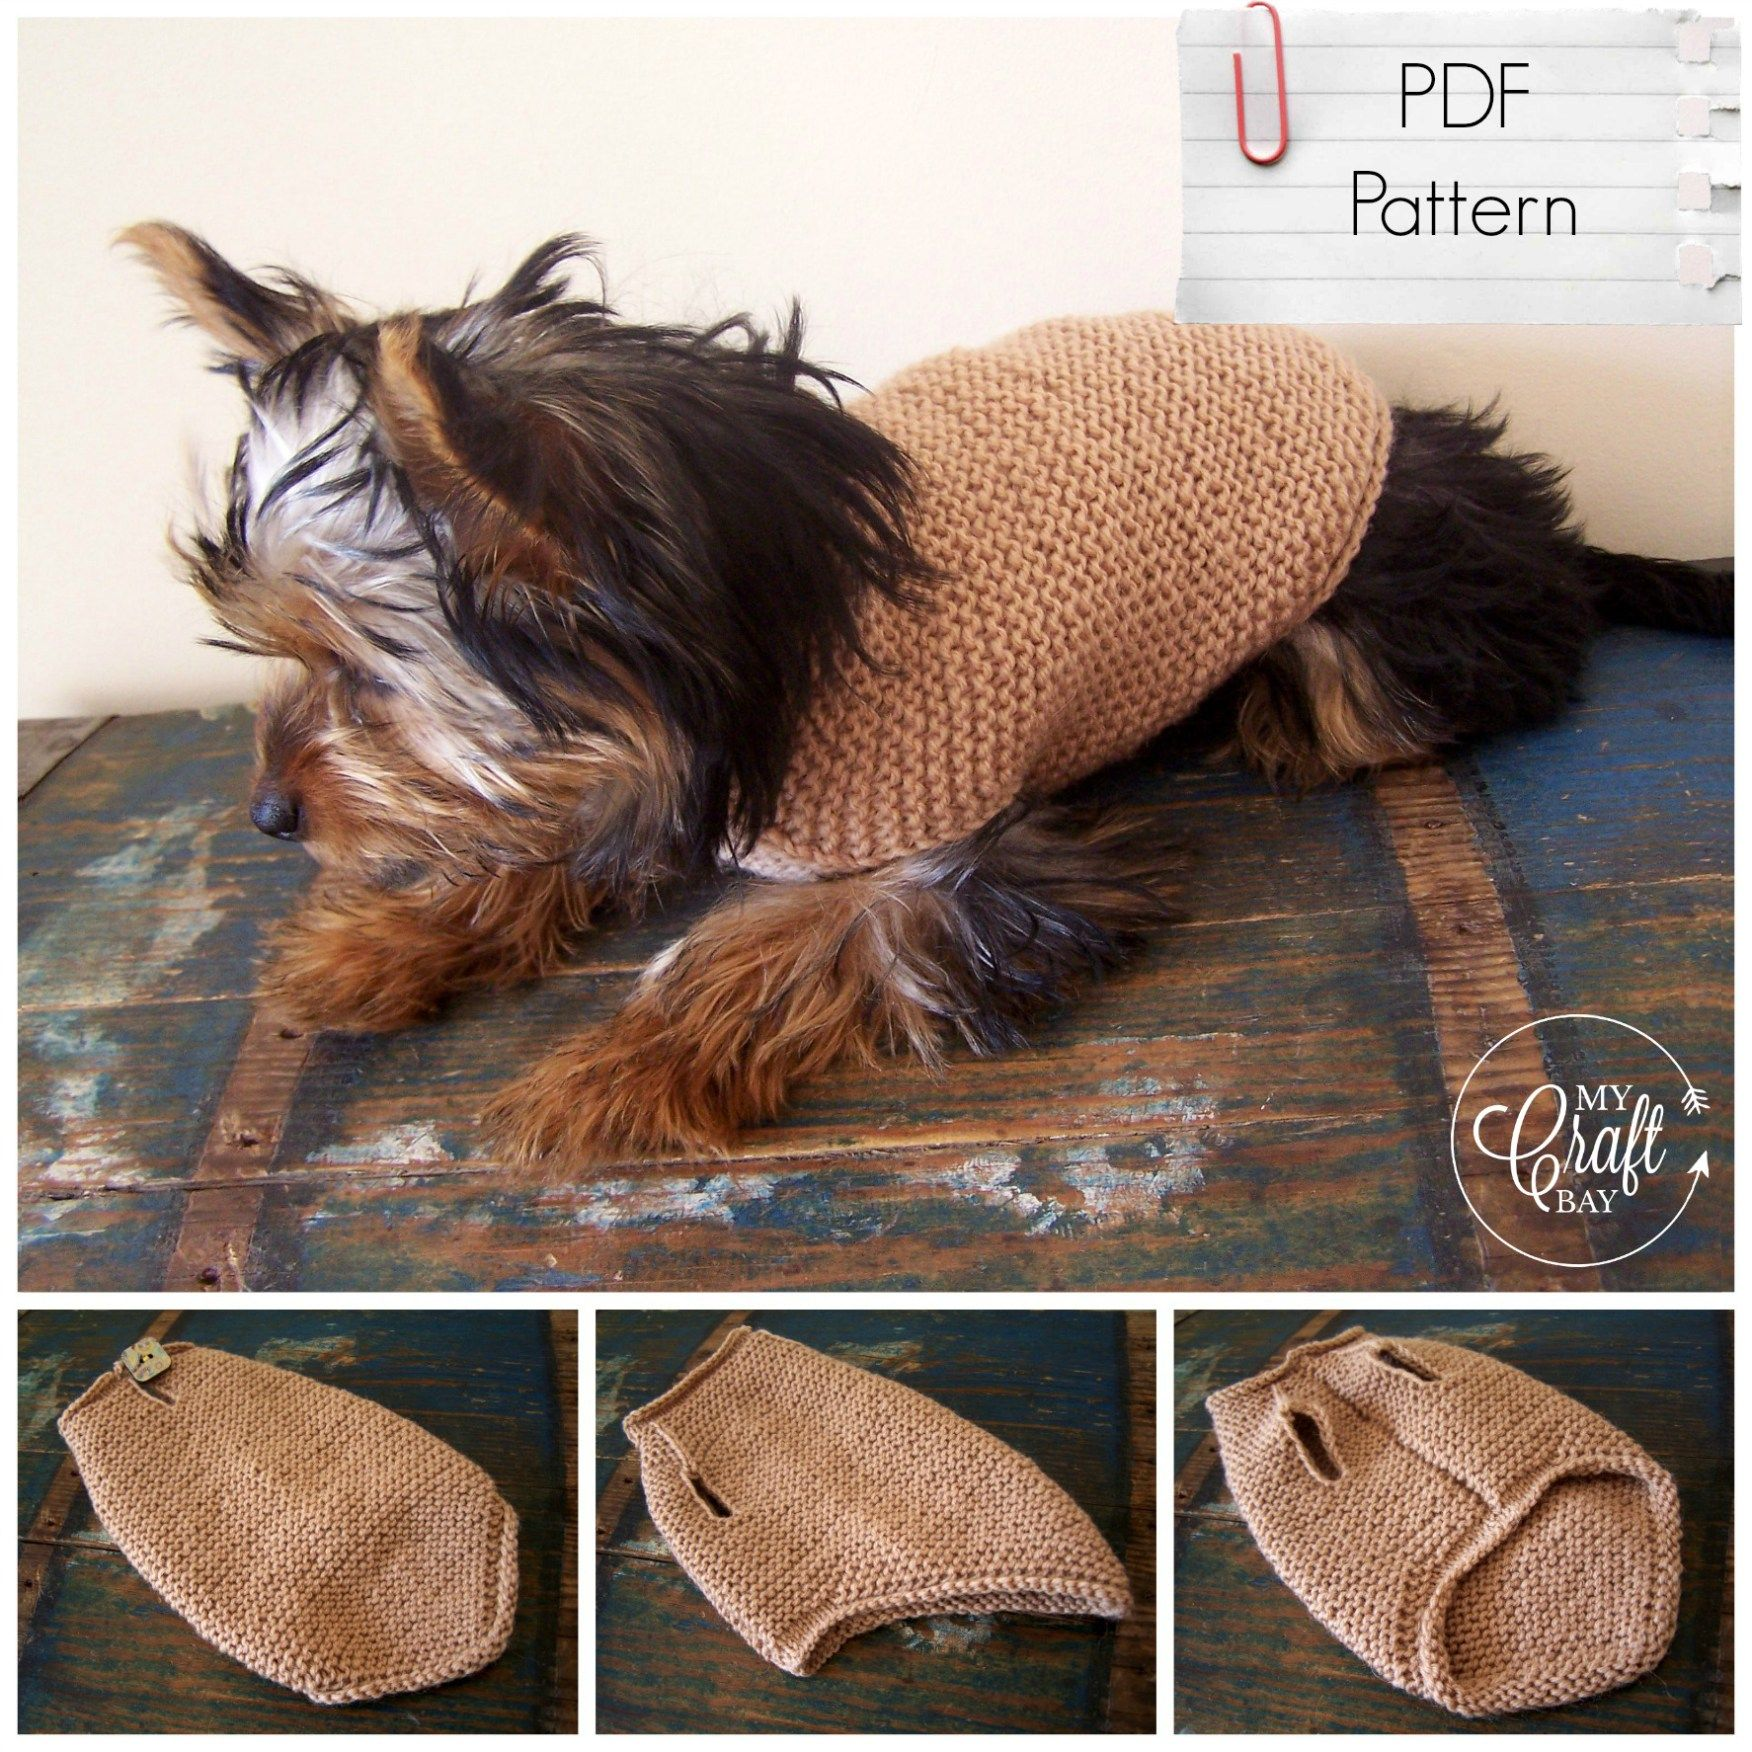 knitted dog sweater PDF pattern | dog sweaters | Pinterest ...